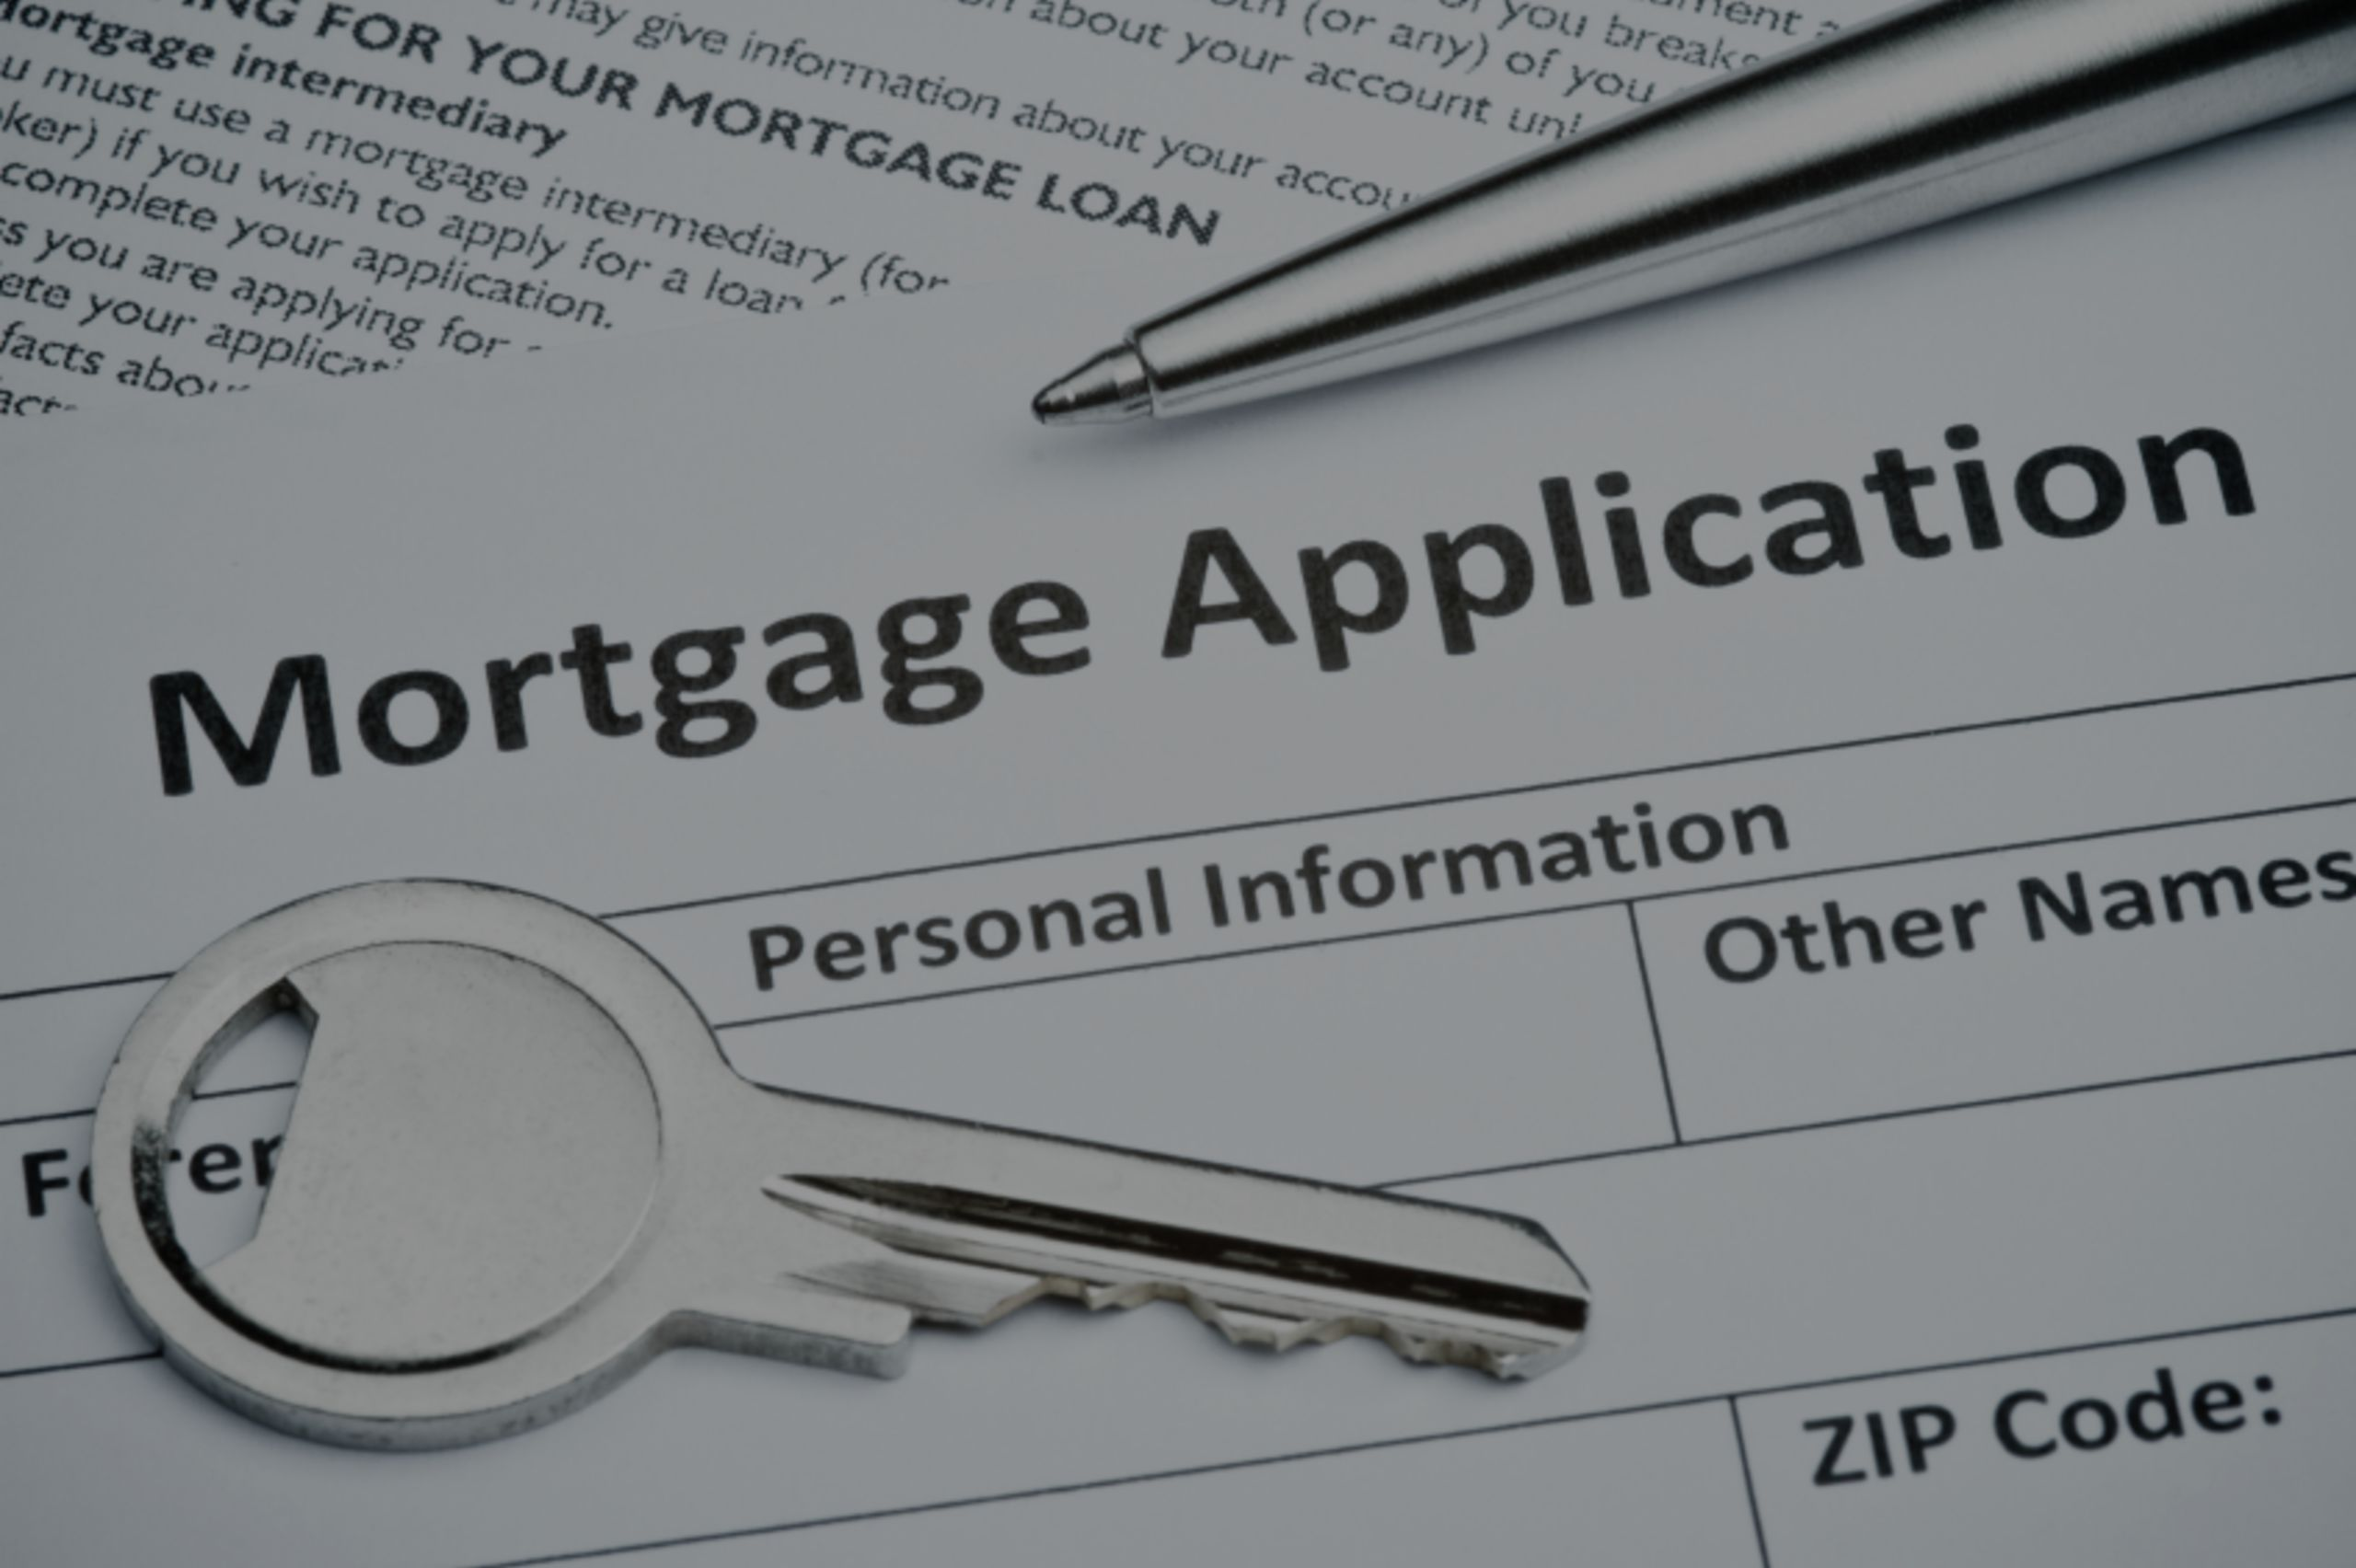 Step 2 to Buying a Home: Get Preapproved For a Mortgage